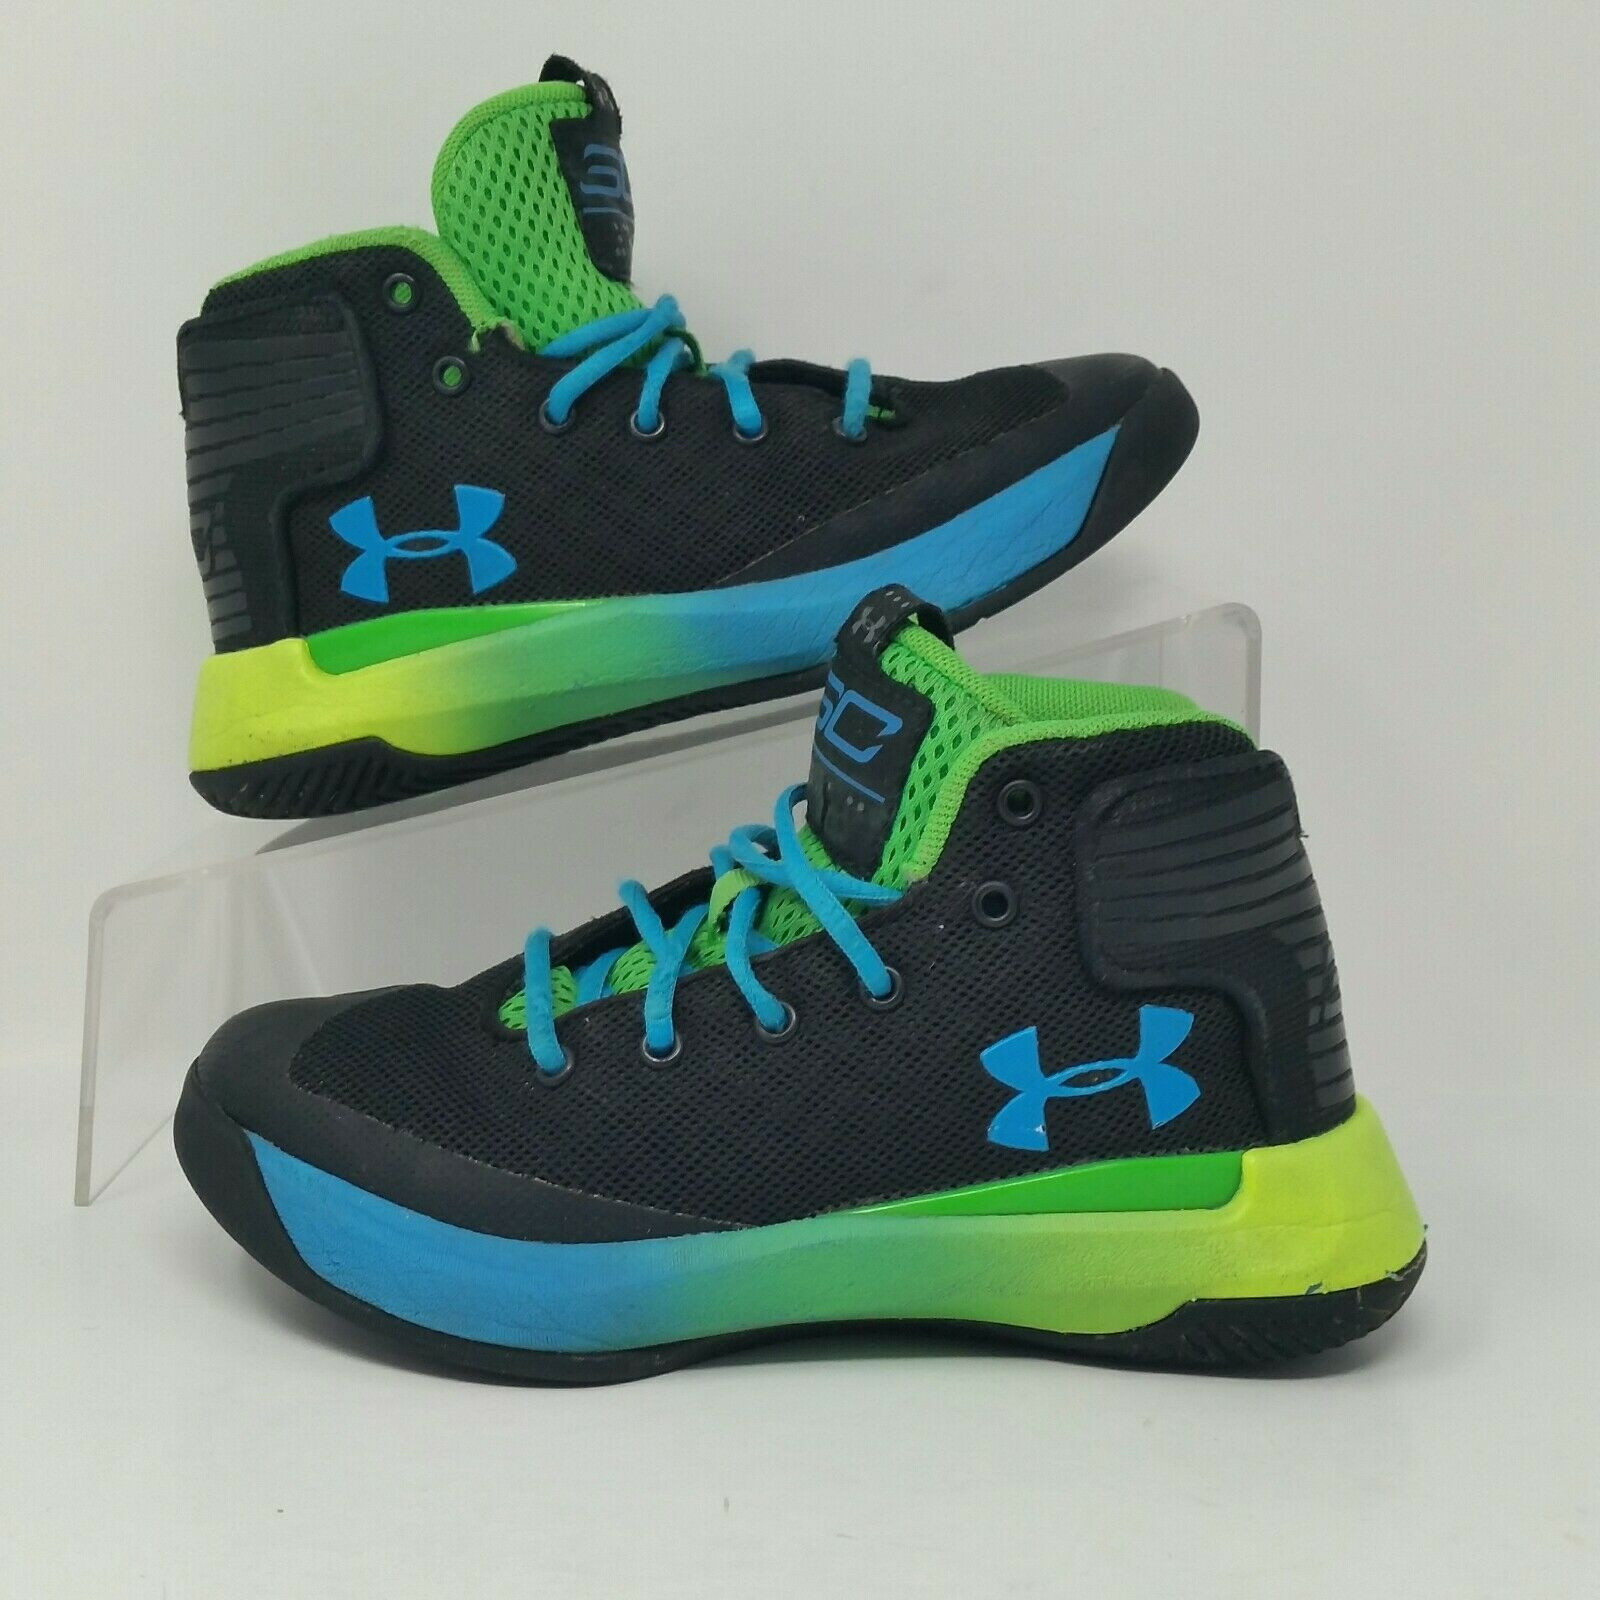 NEW Under Armour Steph Curry Boy Youth Basketball Shoes Blue Yellow Size 4Y